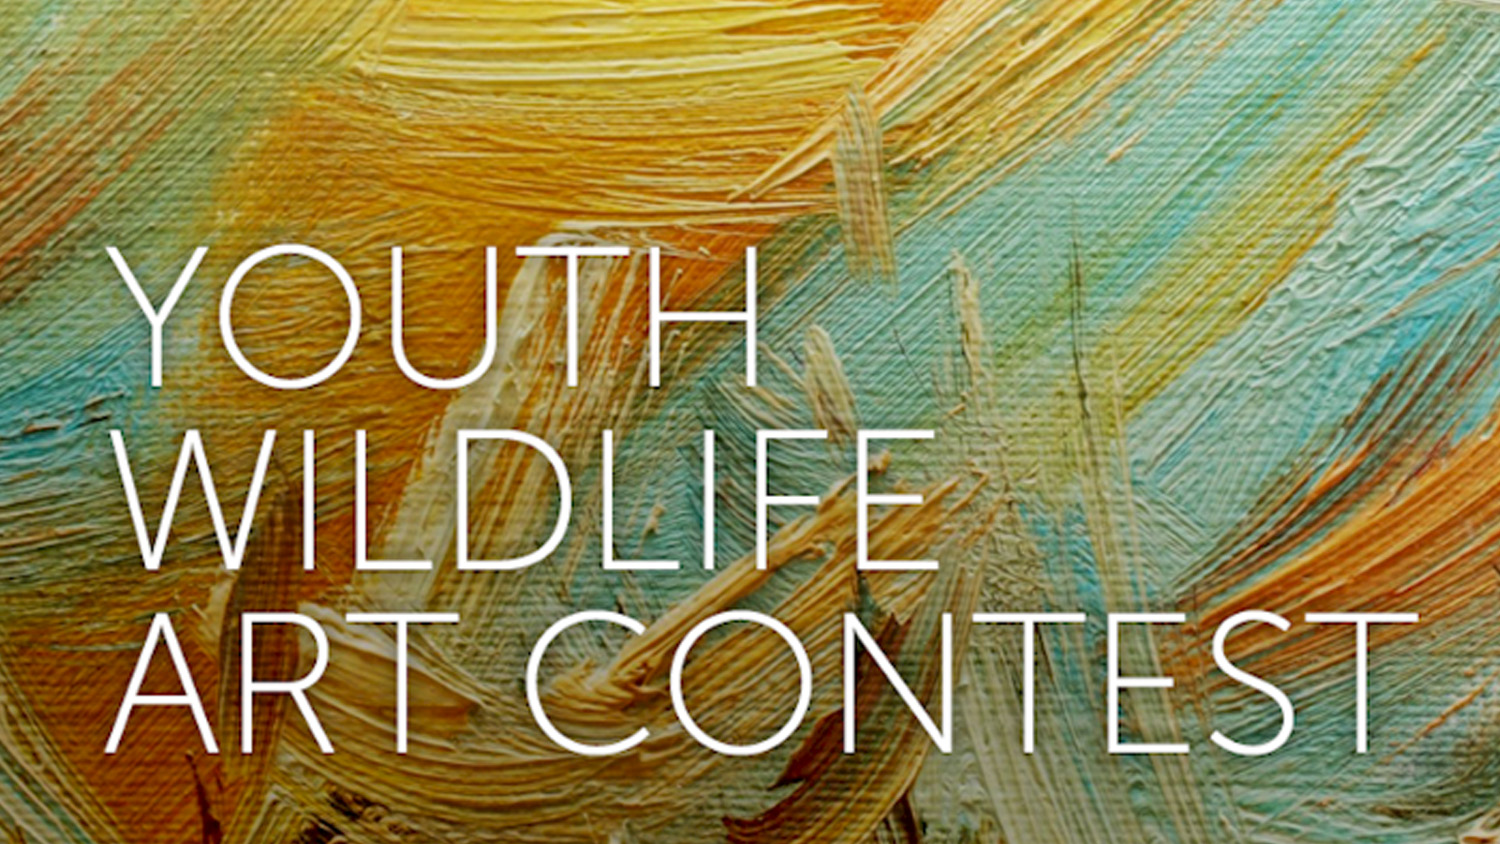 Submit Your Entry For The 2017 Youth Wildlife Art Contest!